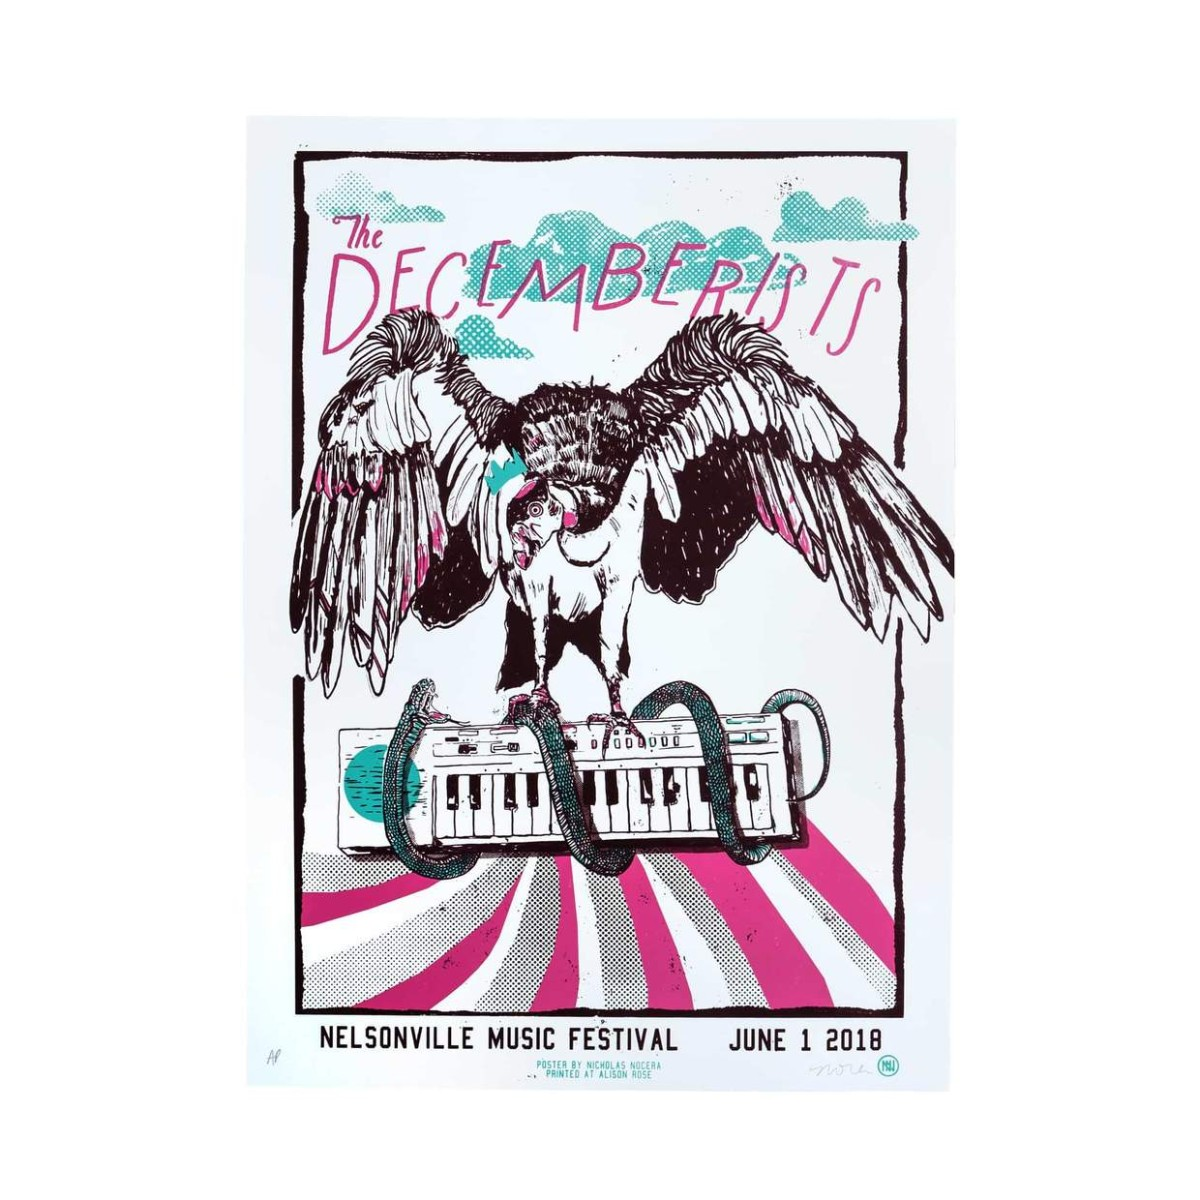 The Decemberists At Nelsonville Music Festival June 1st 2018 Poster